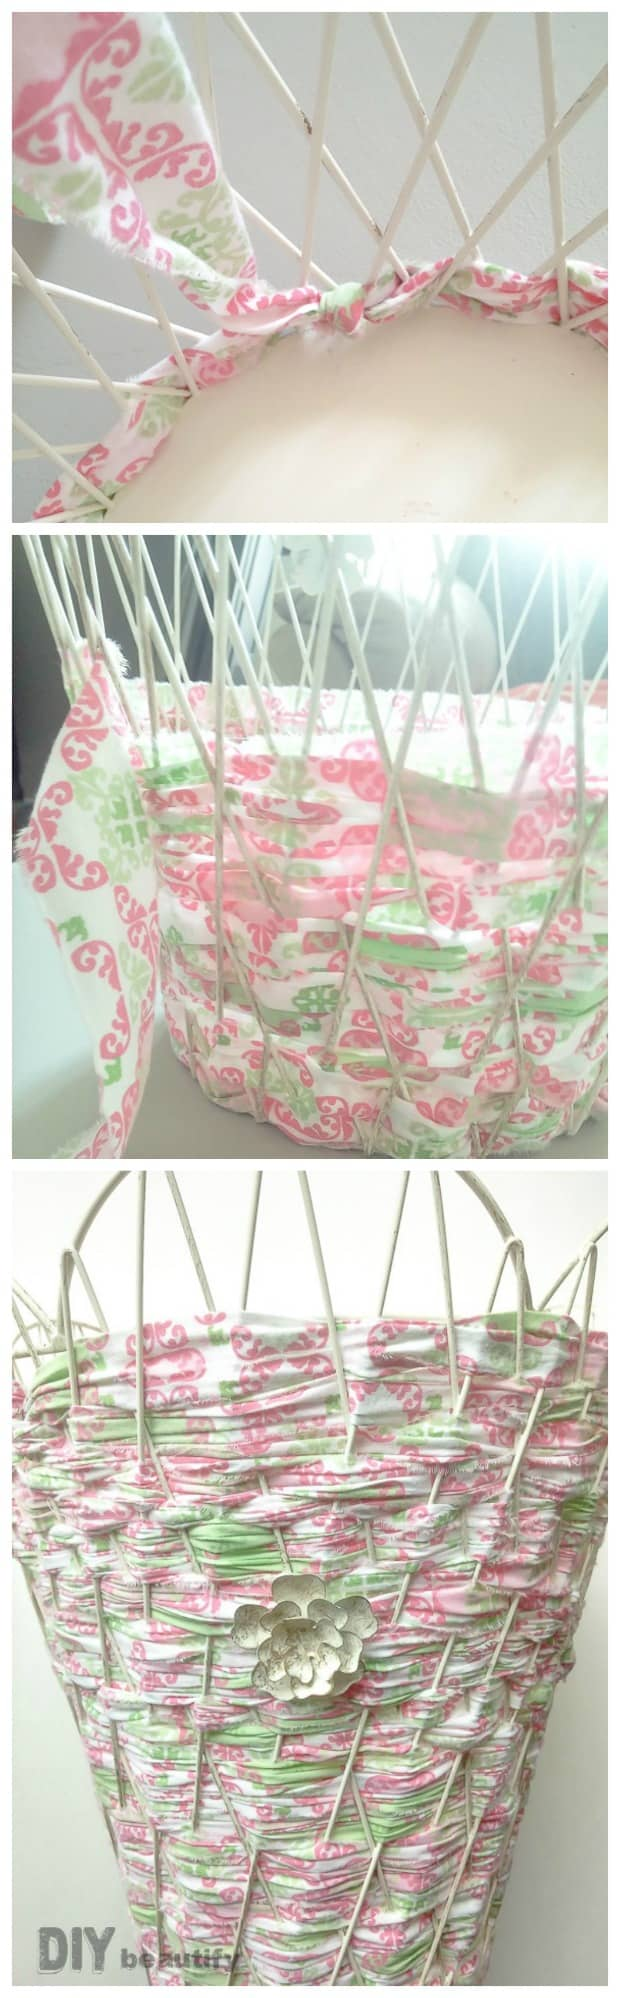 weave fabric in and out of the wire basket